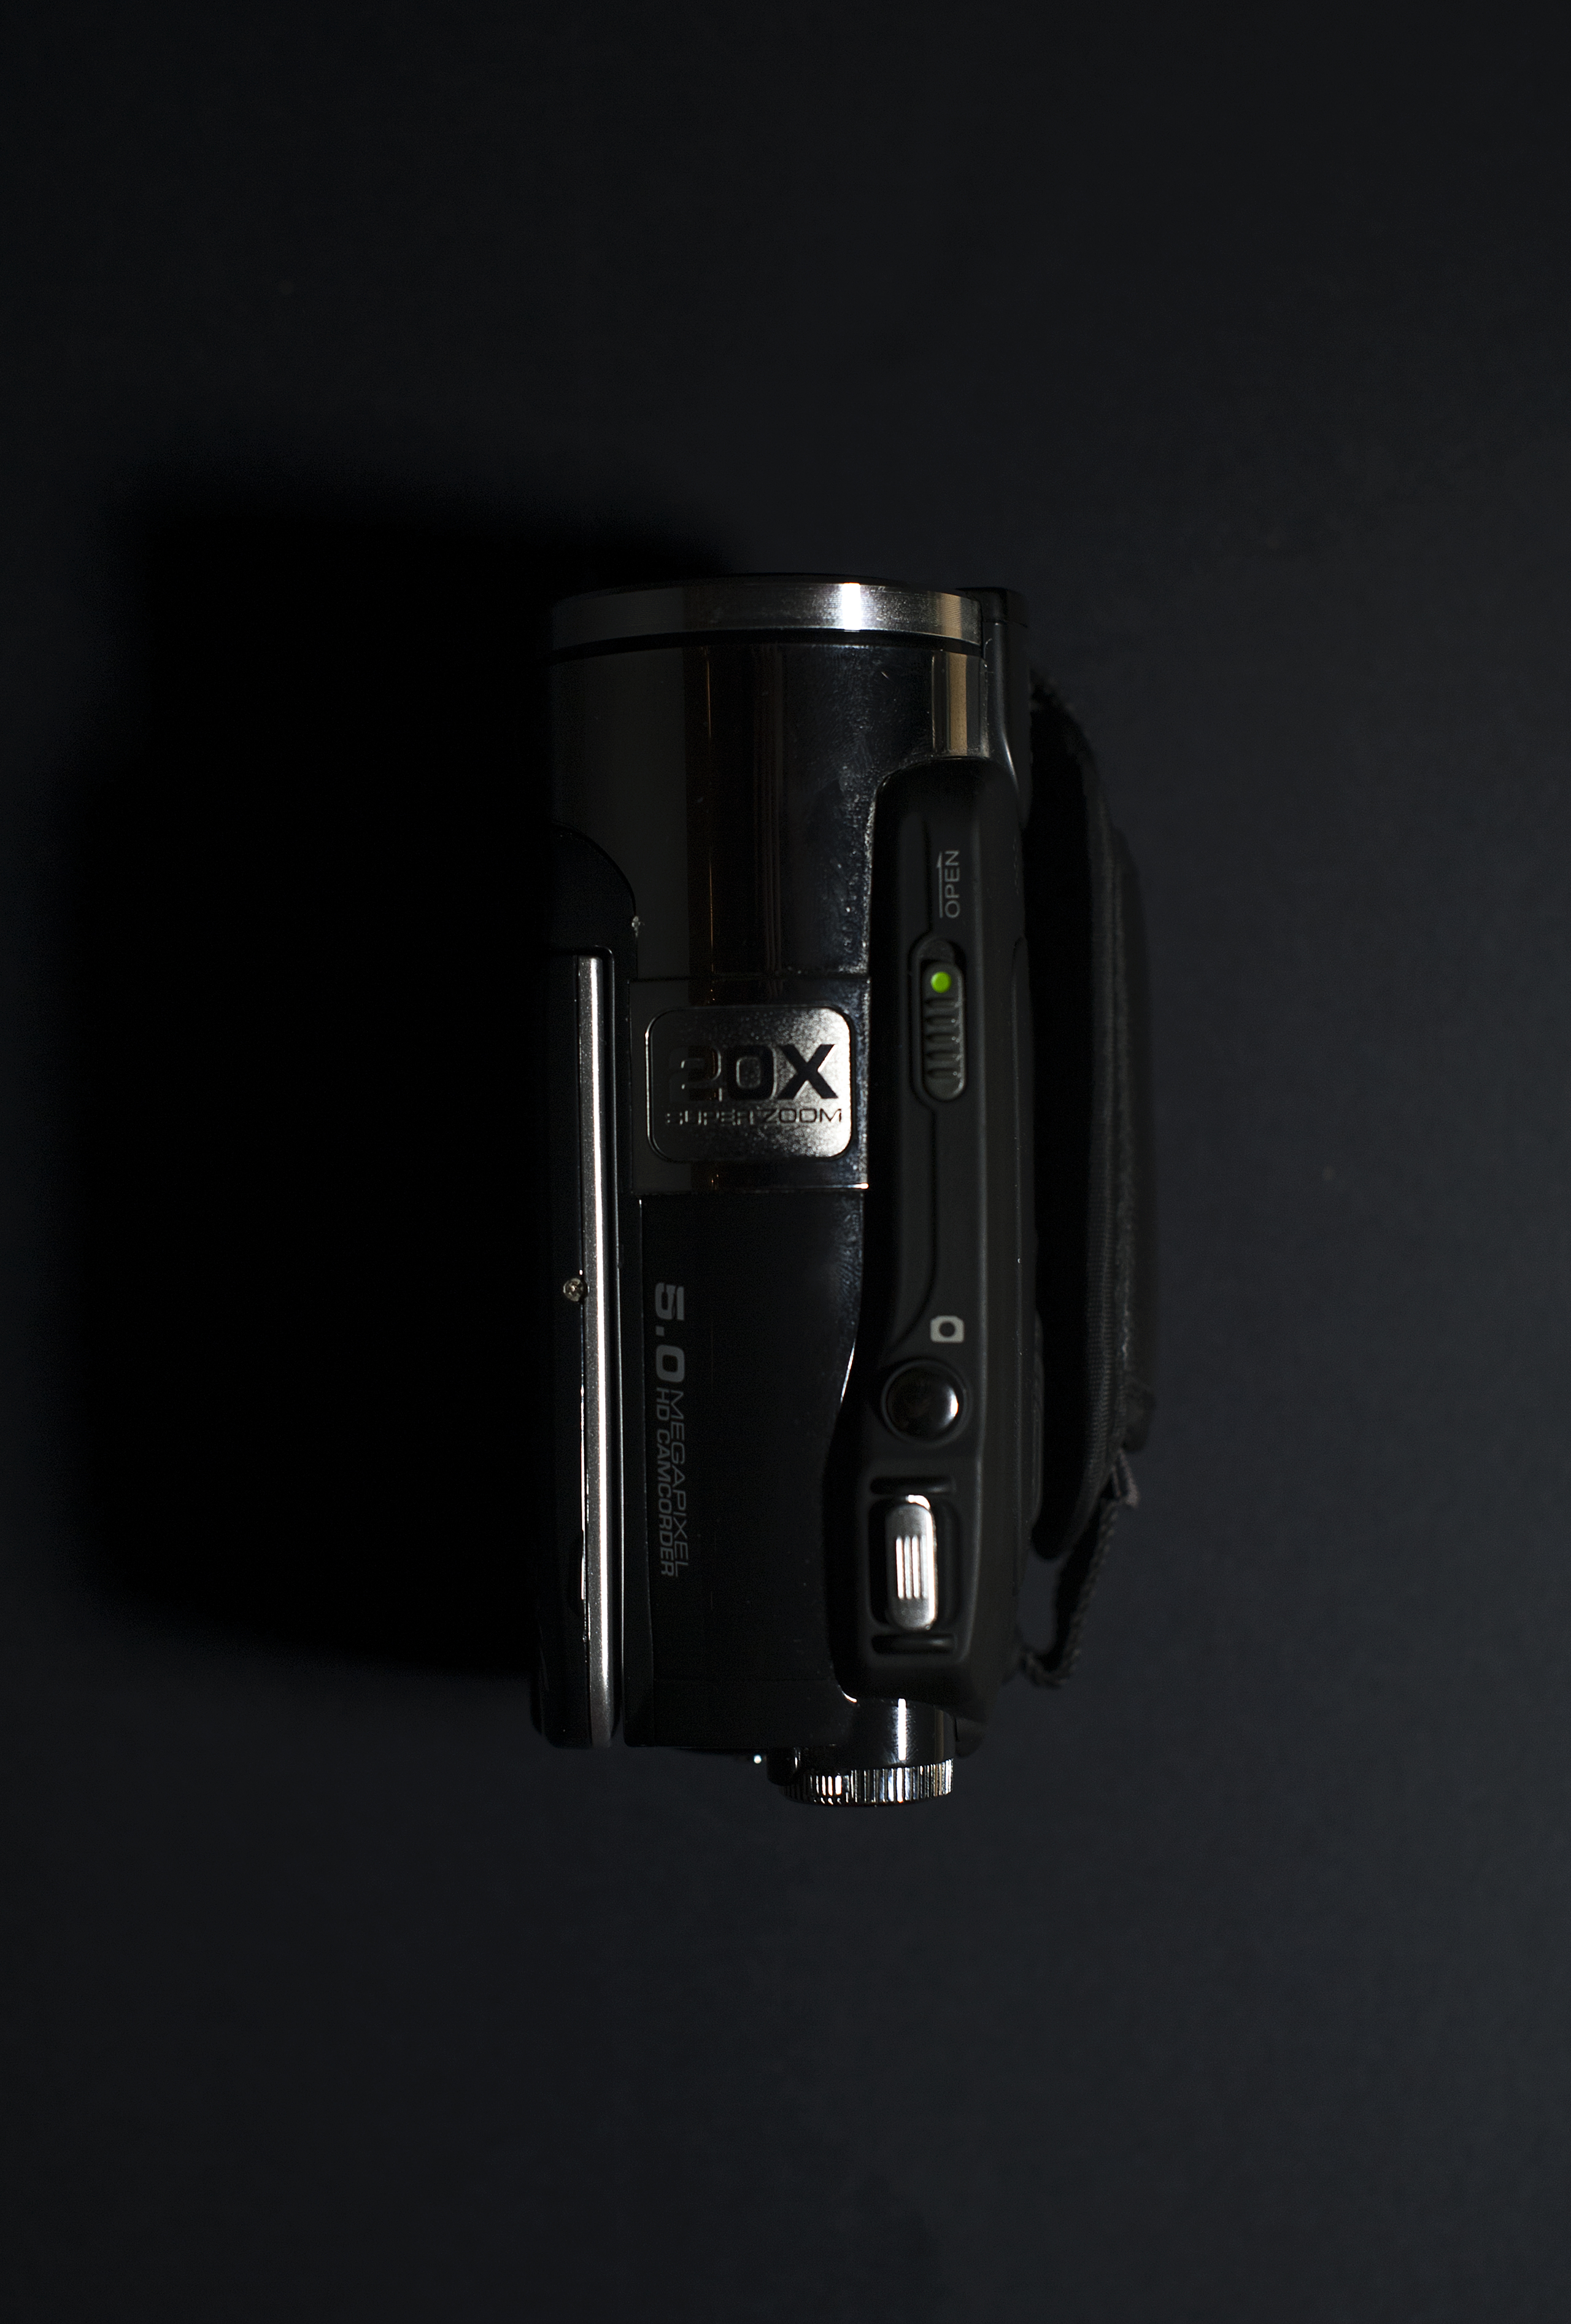 A full-spectrum camera is important to paranormal research due to the fact that it will capture images that are invisible to the human eye. This camcorder has been modified to see the full light spectrum from IR and UV, as well as visible light.